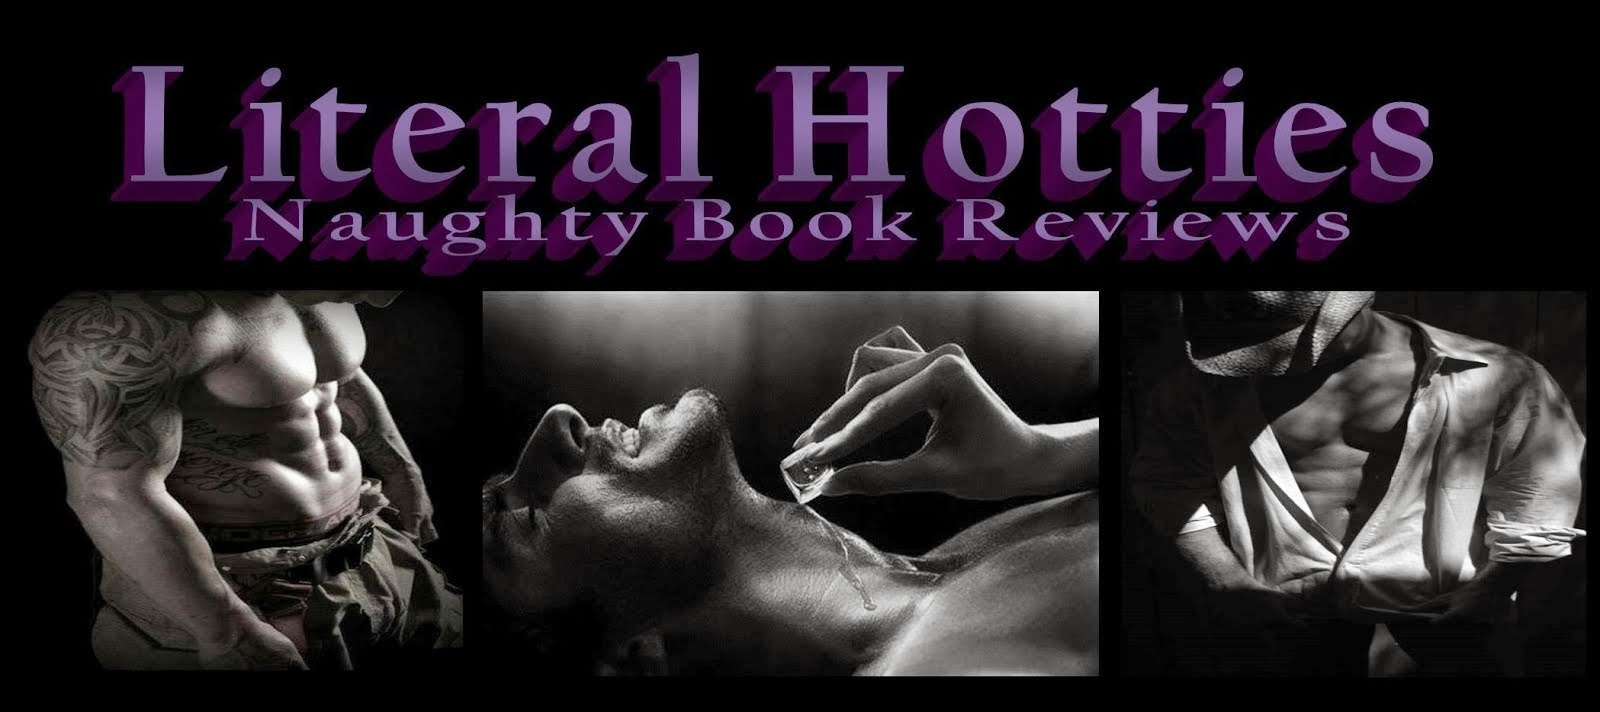 Literal Hotties Naughty Book Reviews